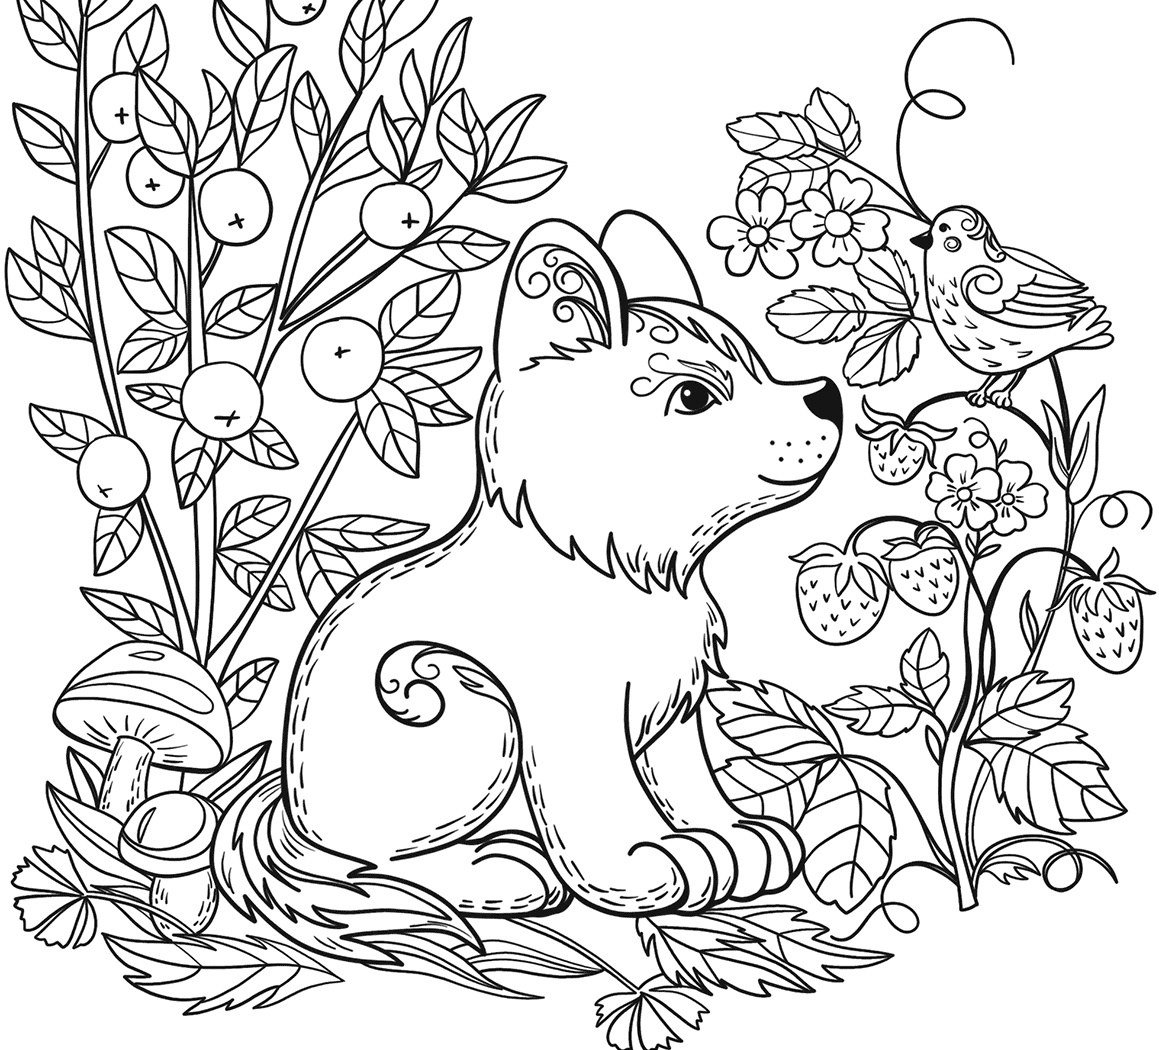 Coloring Ideas : Free Animal Coloring Pages Fresh Wild Gallery - Free Printable Wild Animal Coloring Pages